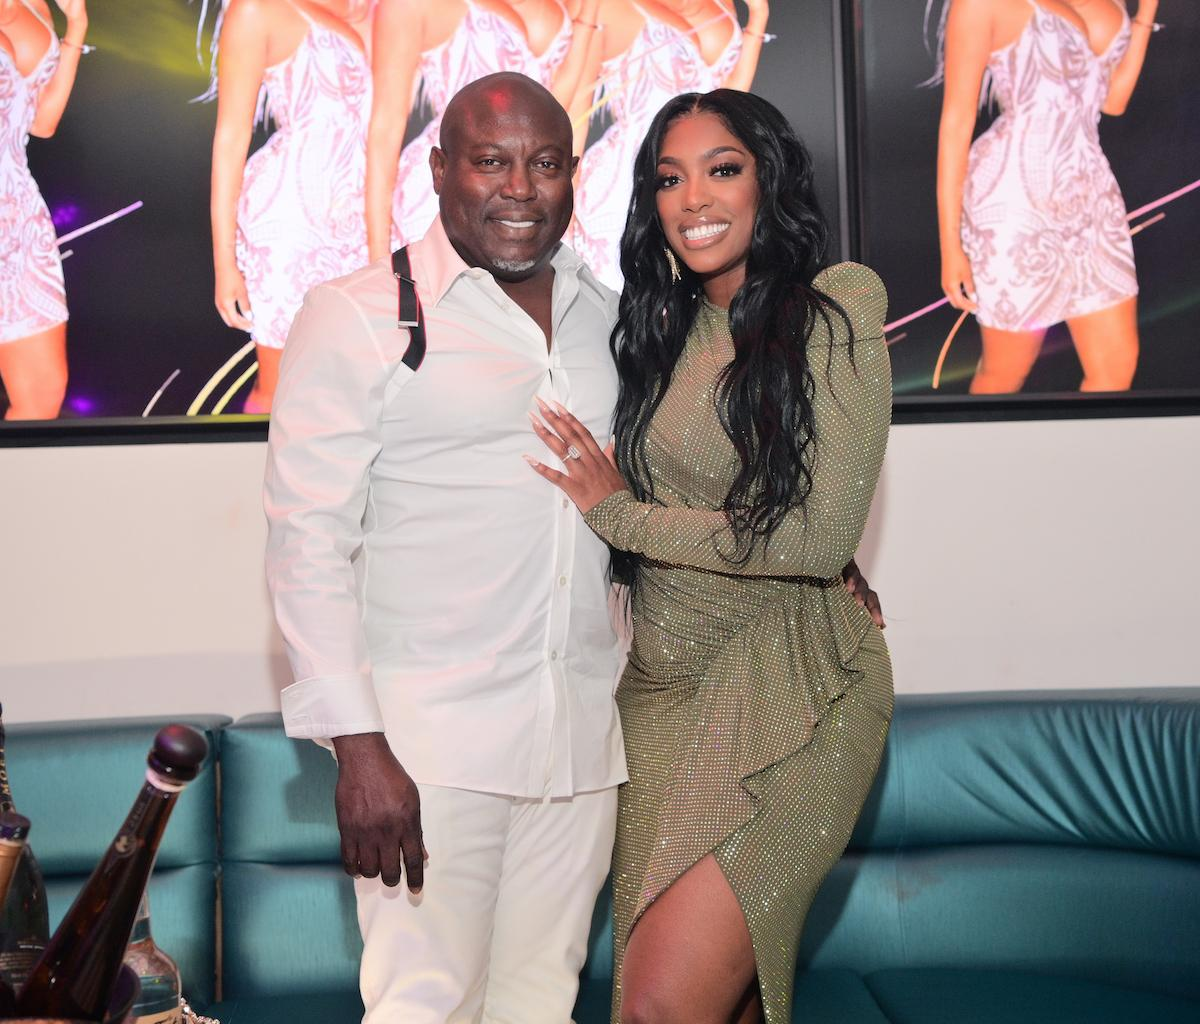 Porsha Williams Shares Pics From Her Date Night And Impresses Fans